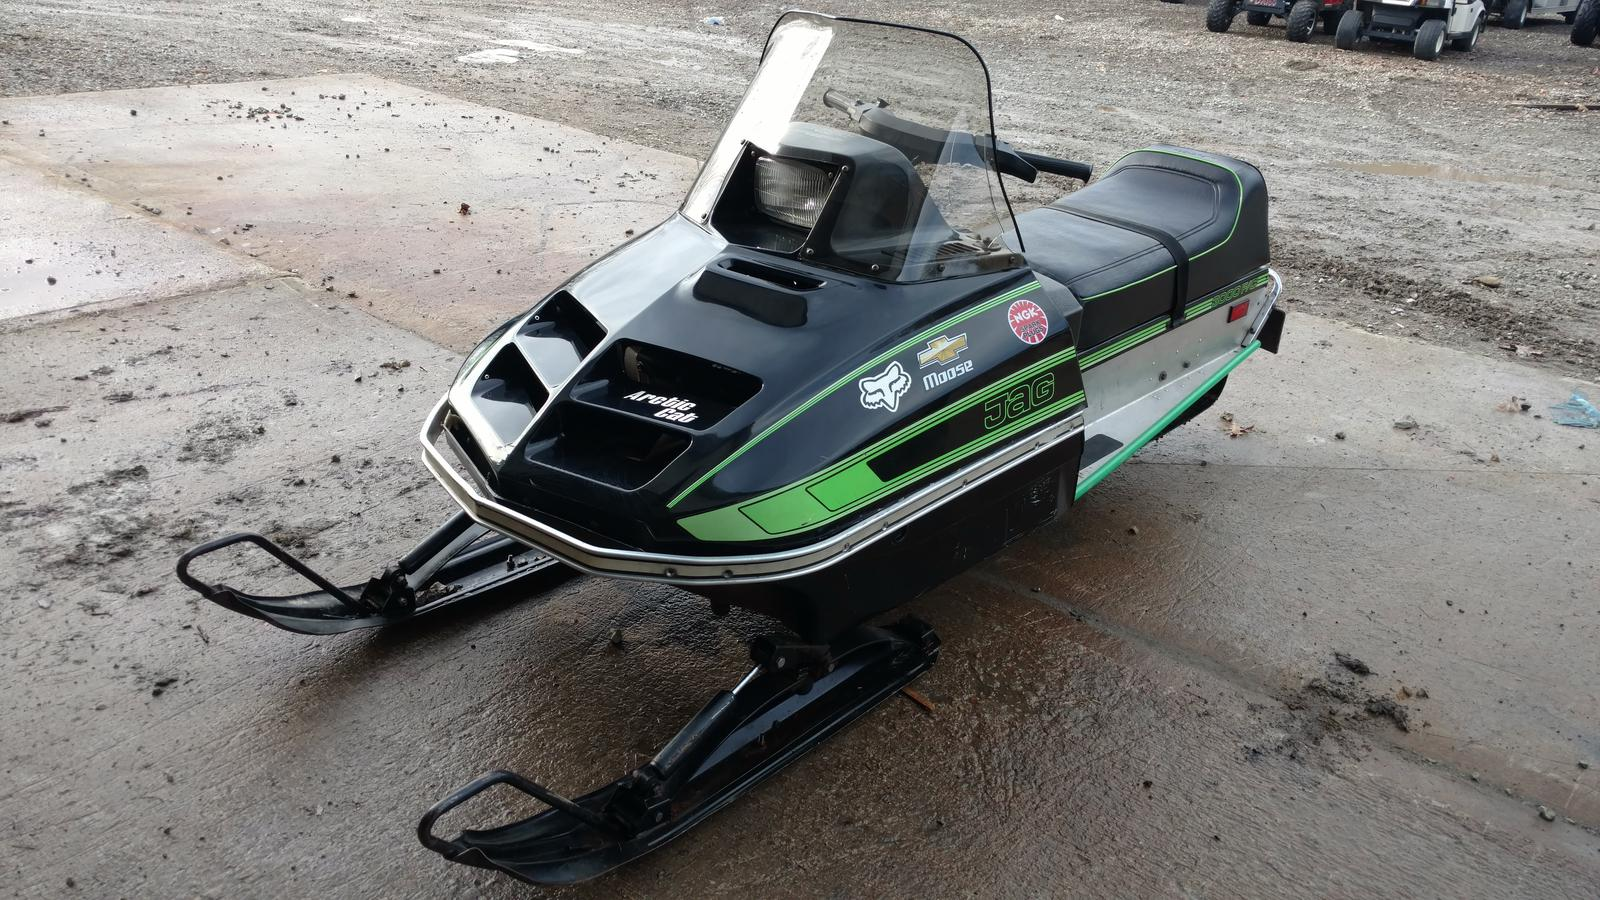 Arctic Cat Jag 3000 Snowmobile Wiring Diagrams 2003 Z570 Inventory From And Cushman Kneppco Equipment Llc 5344x3006